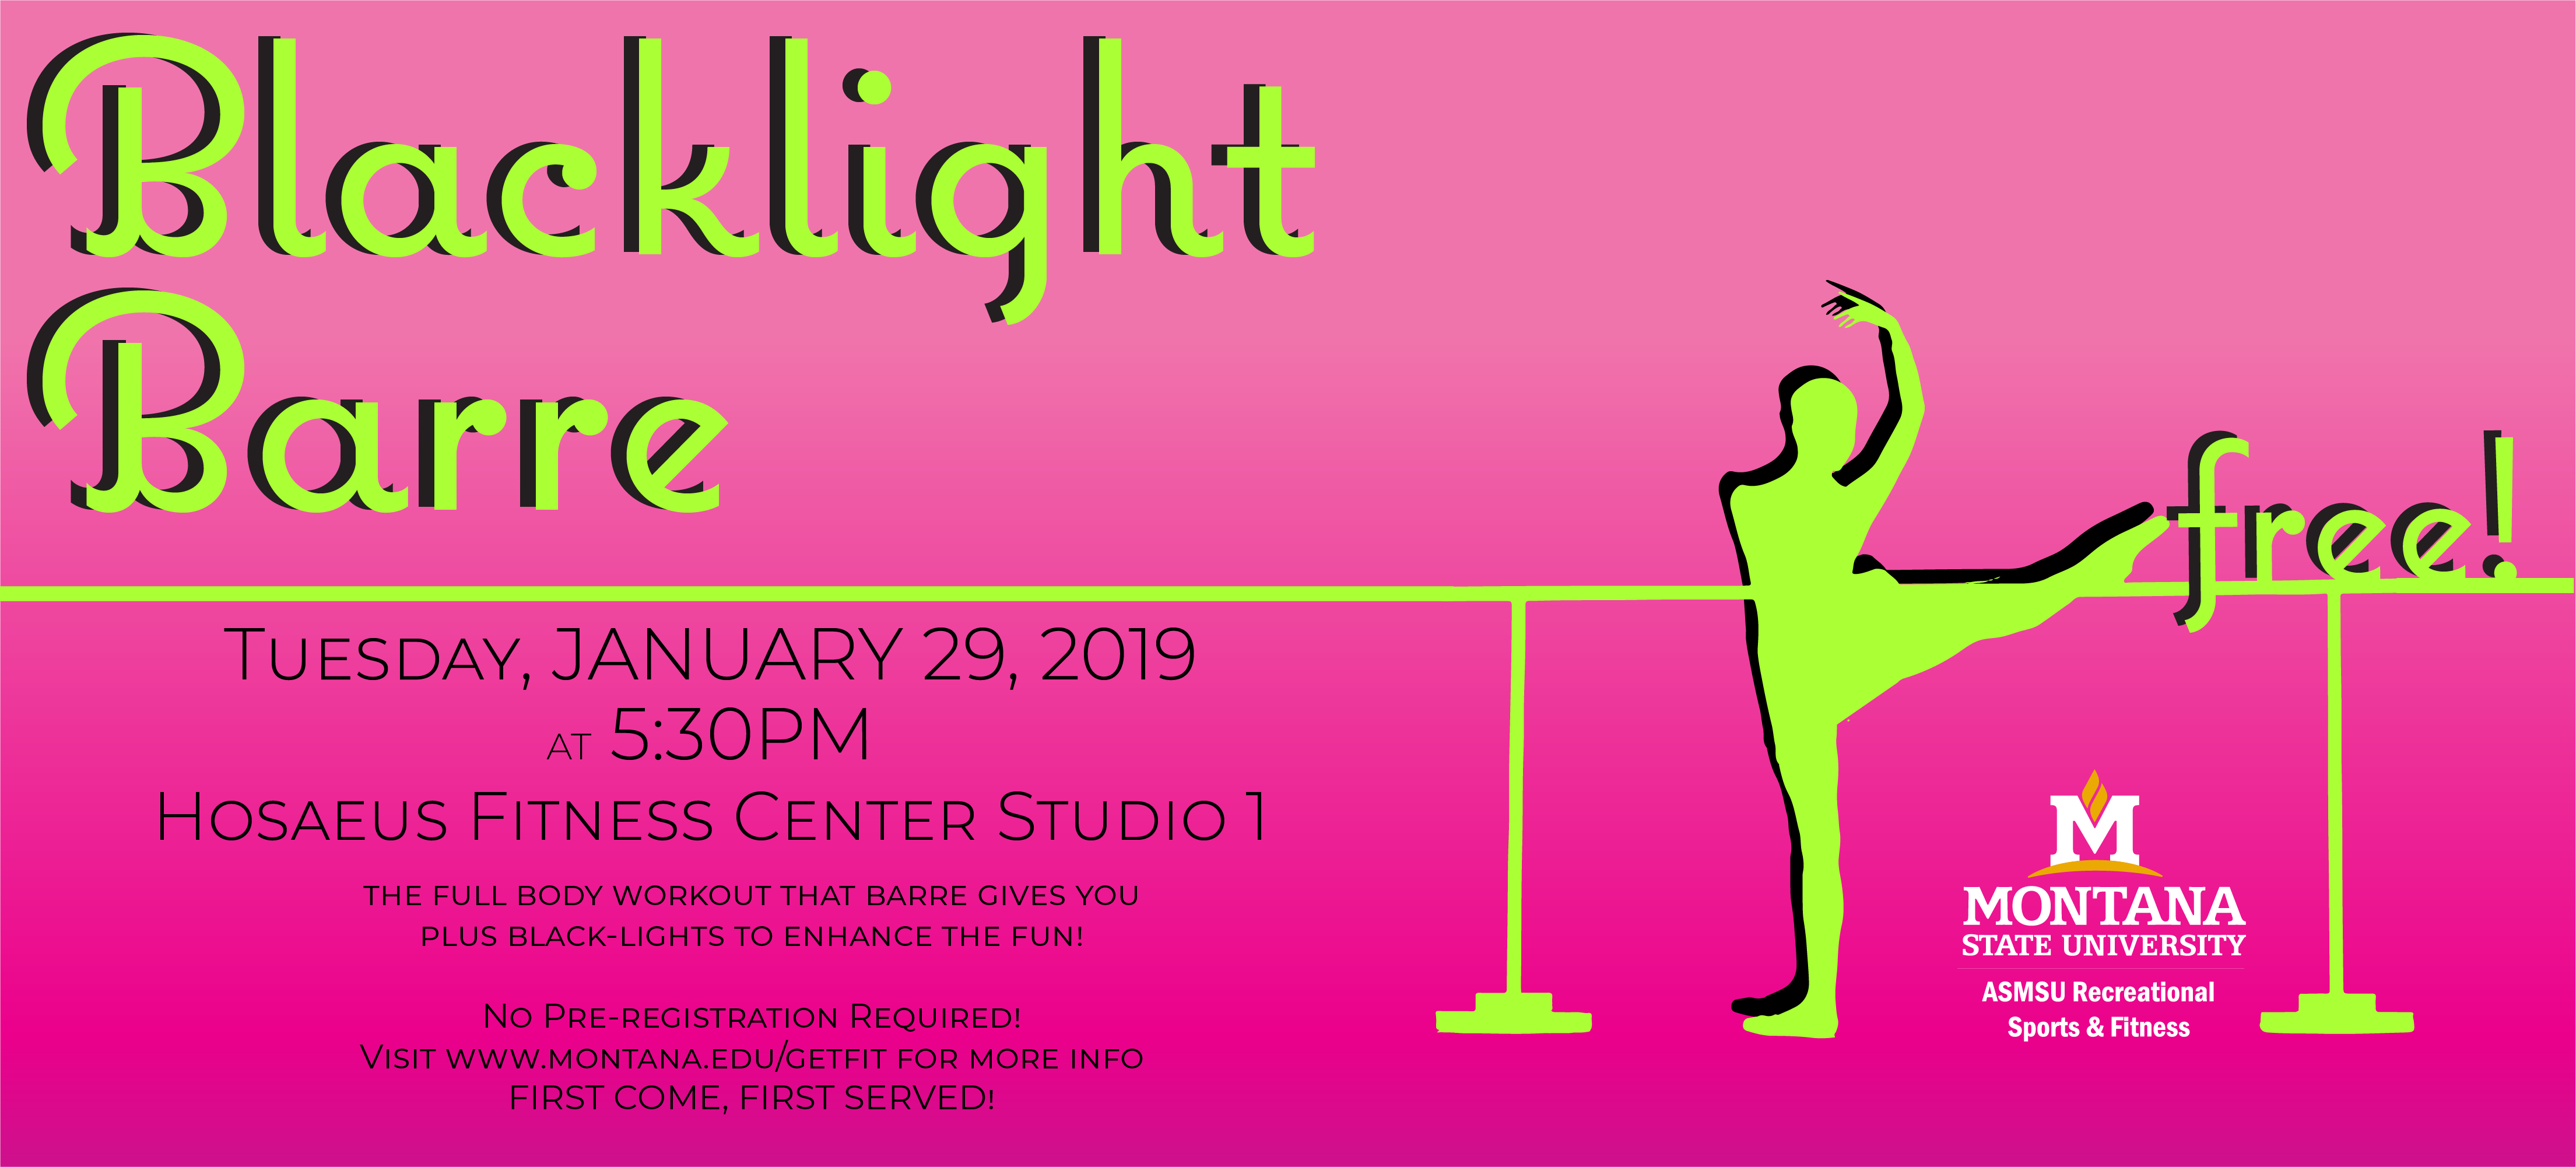 January 29, 2019 at 5:30 p.m. at the Hosaeus Fitness Center.  Free with no pre-registration required.